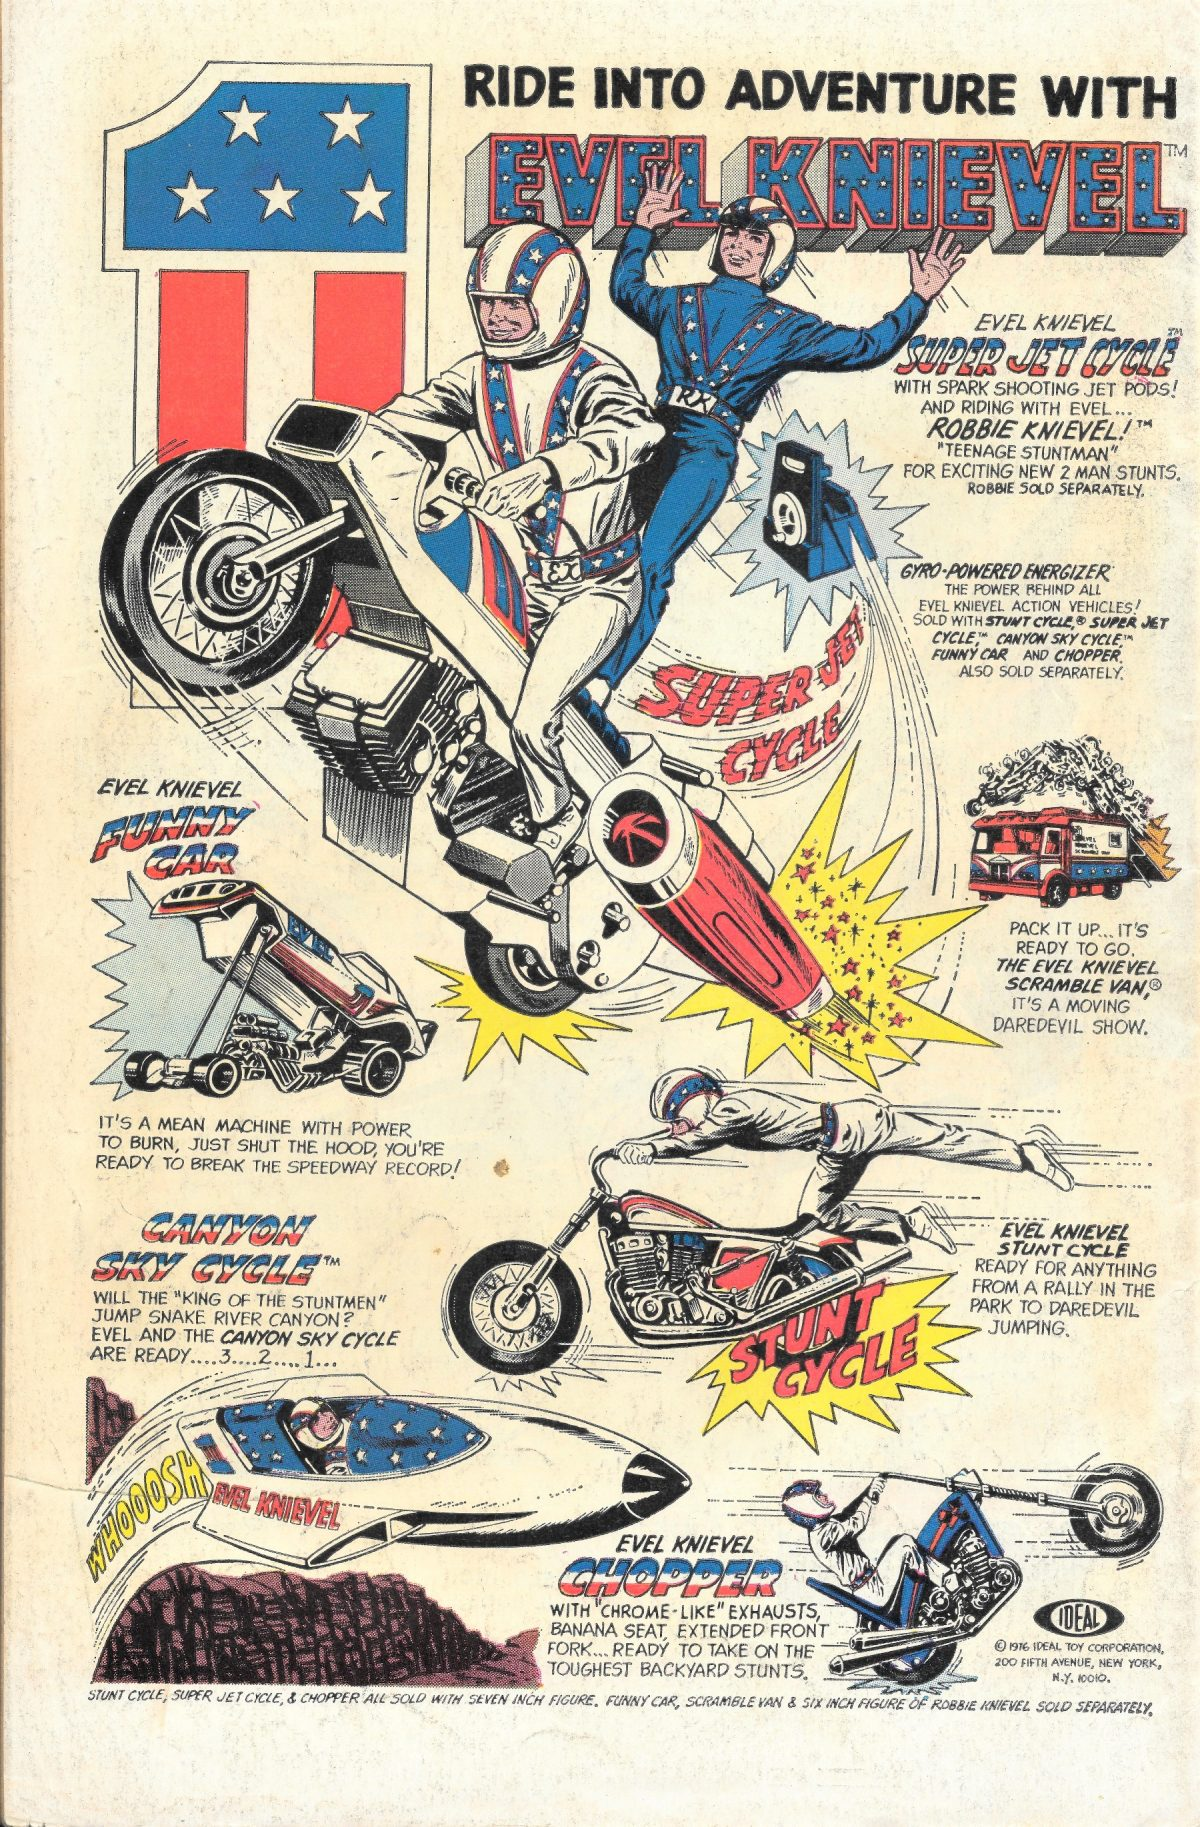 adverts, American, comics, 1960s, 1970s, Evel KnievelSea Monkeys, X-Ray Specs, comic book ads Harold von Braunhut